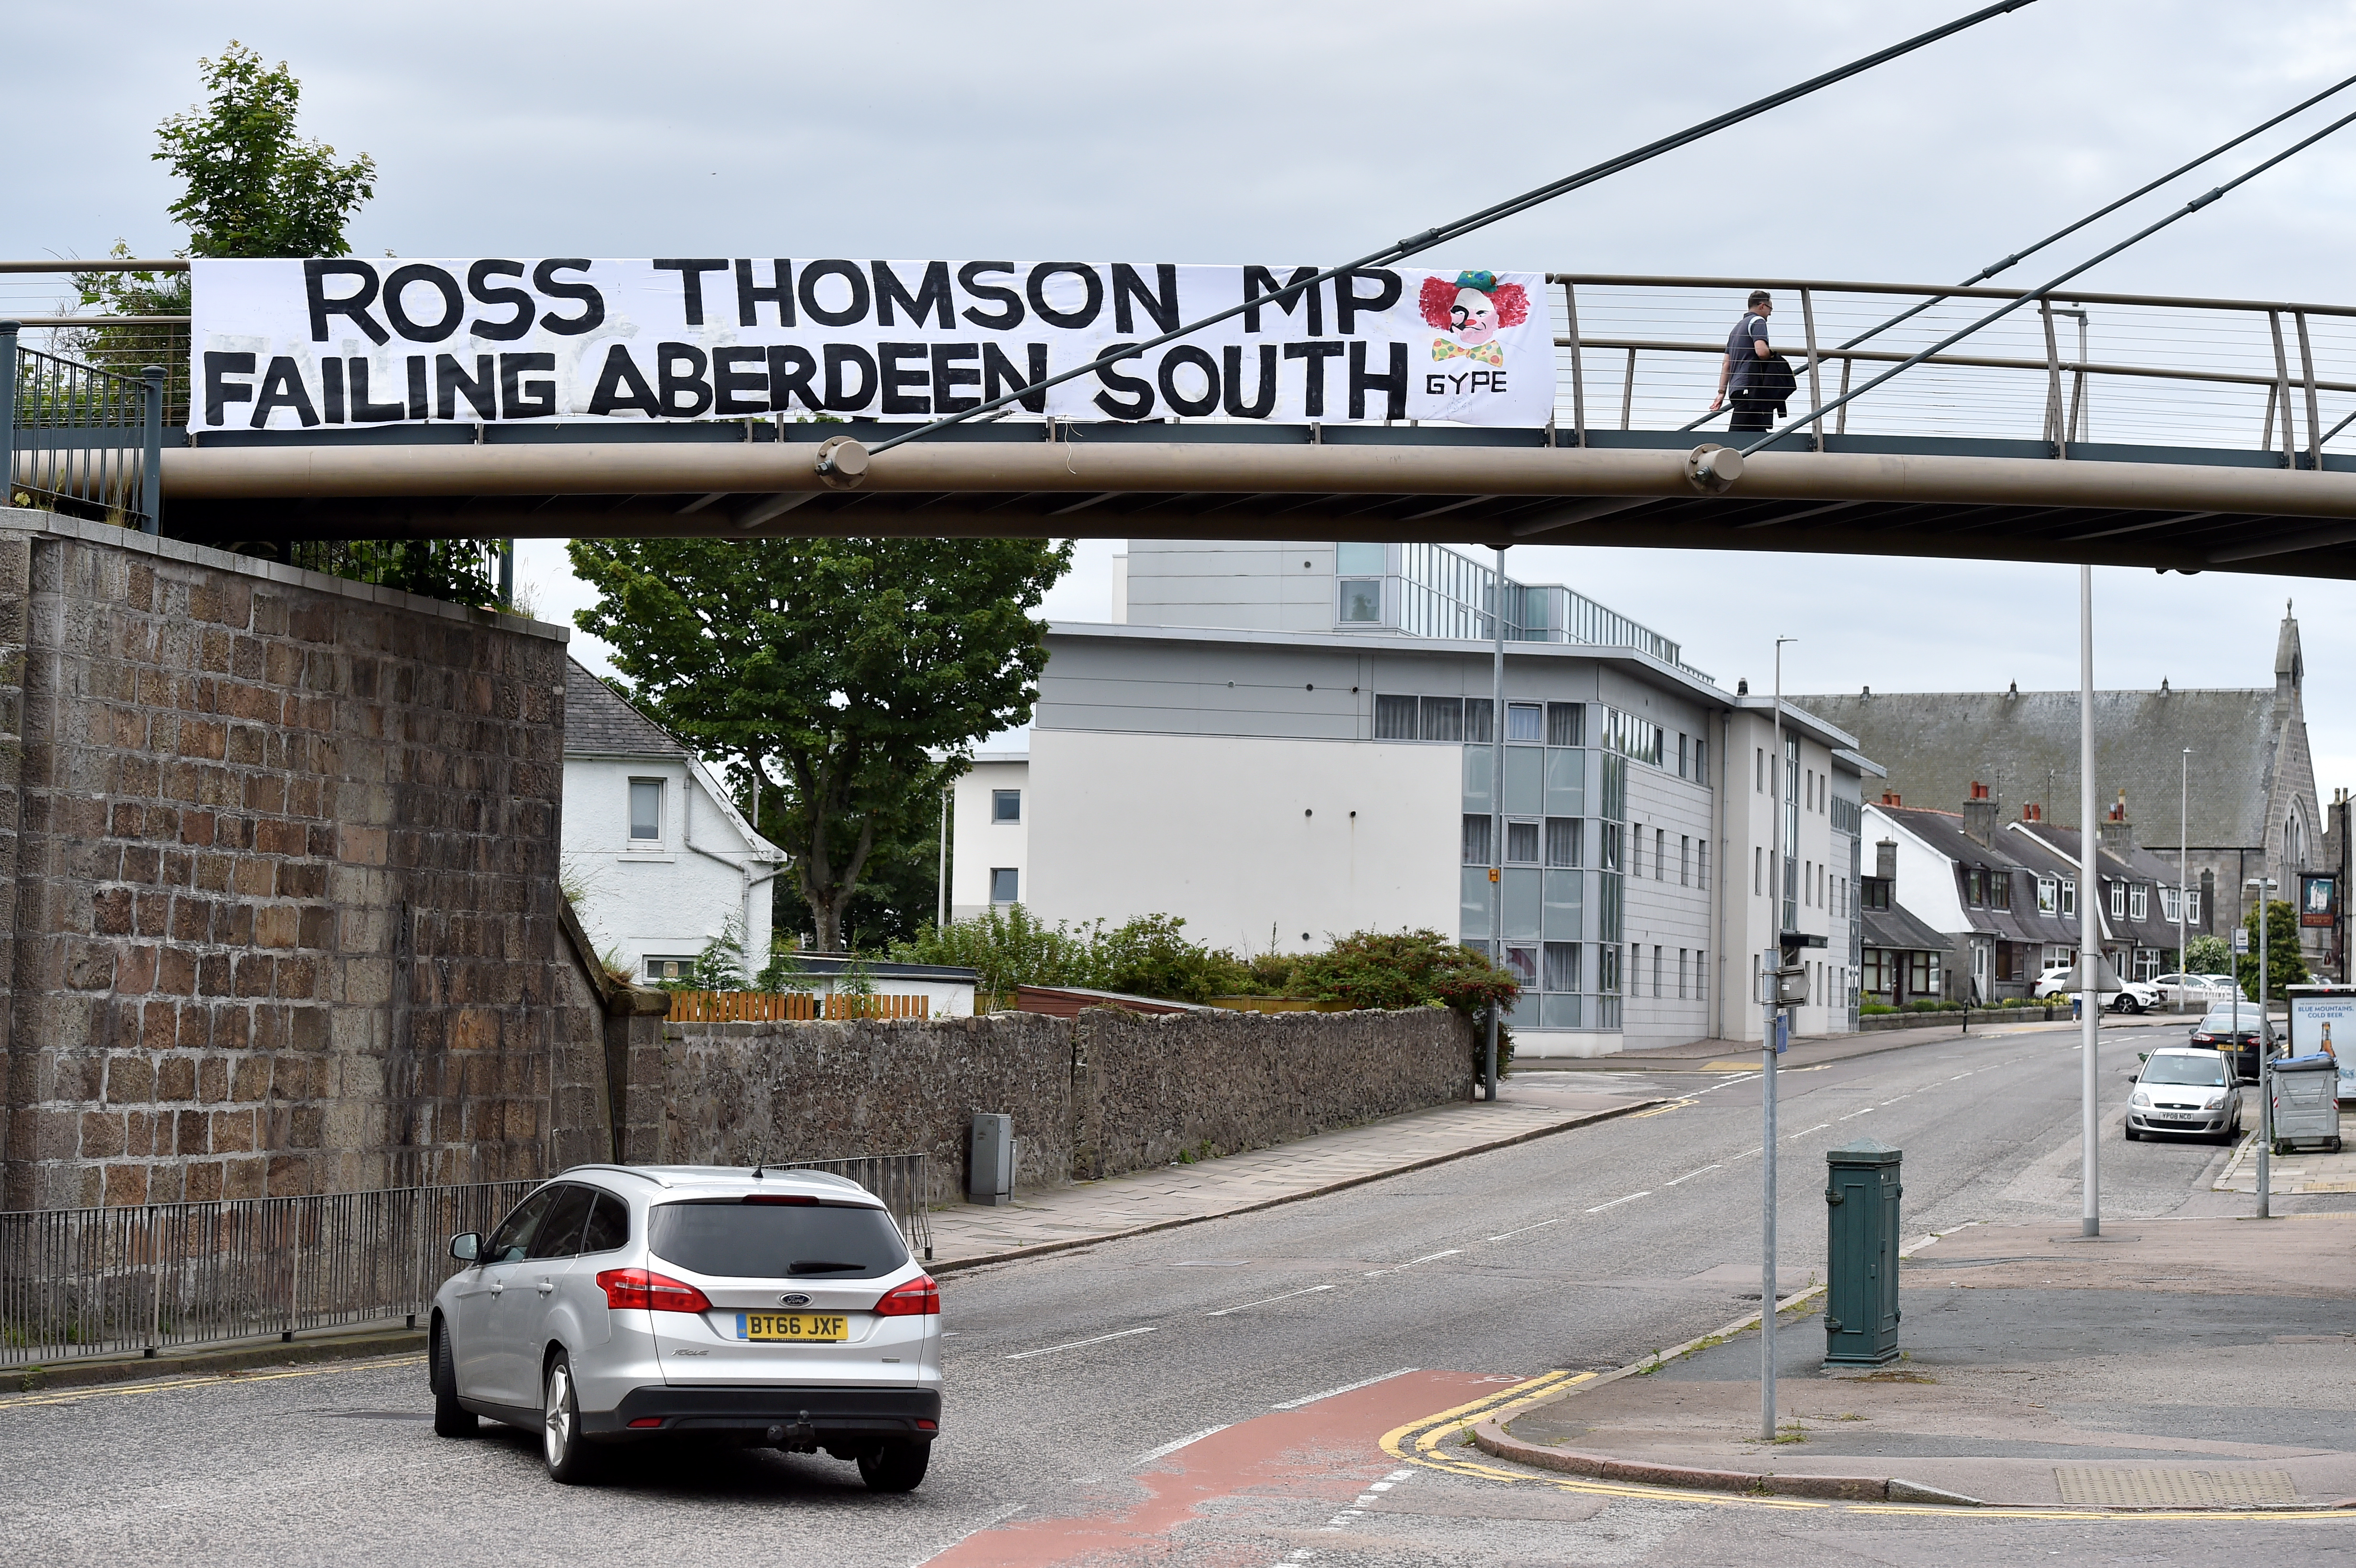 The banner is hanging from the Deeside Line bridge over Holburn Street